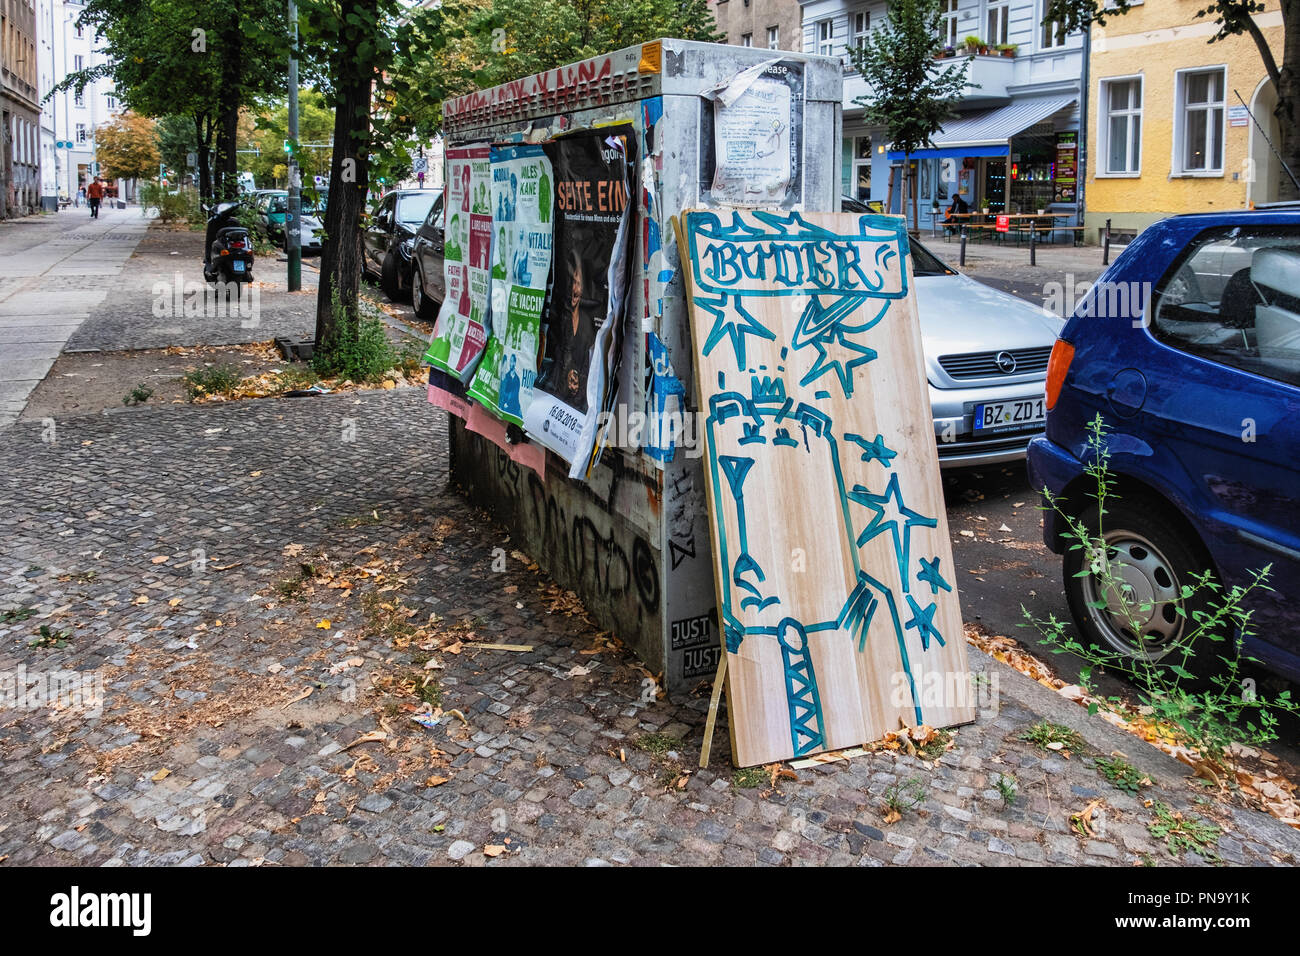 Berlin-Mitte. Opportunistic transient street art. Street artist Buder uses found wood (old discarded shelves) for sketches that soon disappear - Stock Image